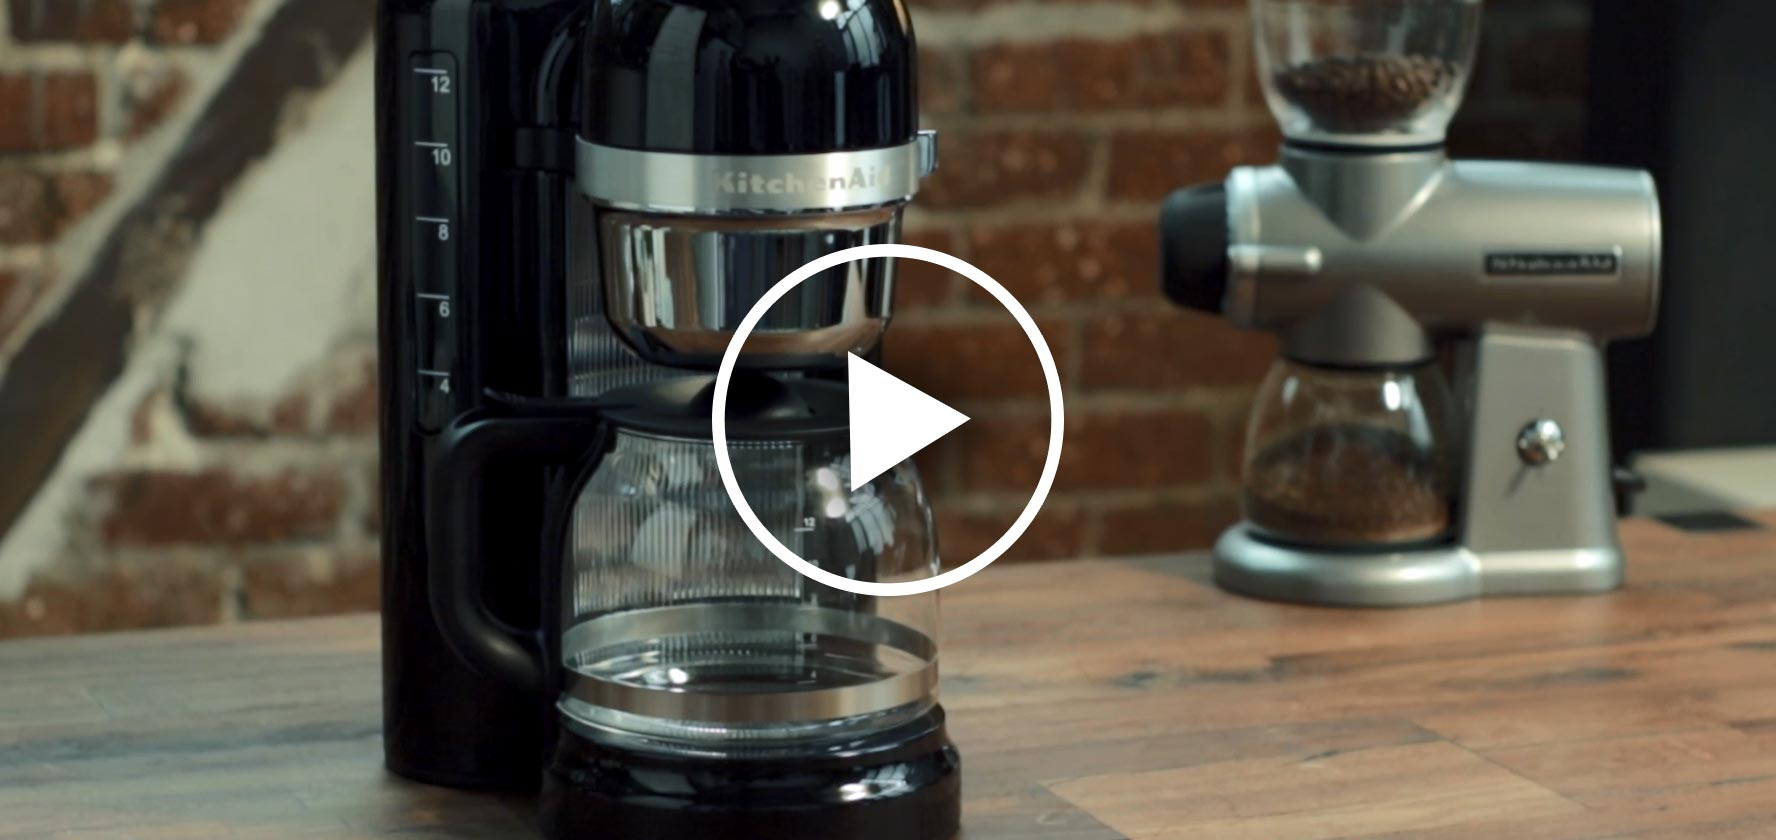 Kitchenaid Grind And Brew Coffee Maker : NEW COFFEE PRODUCTS FROM KITCHENAID